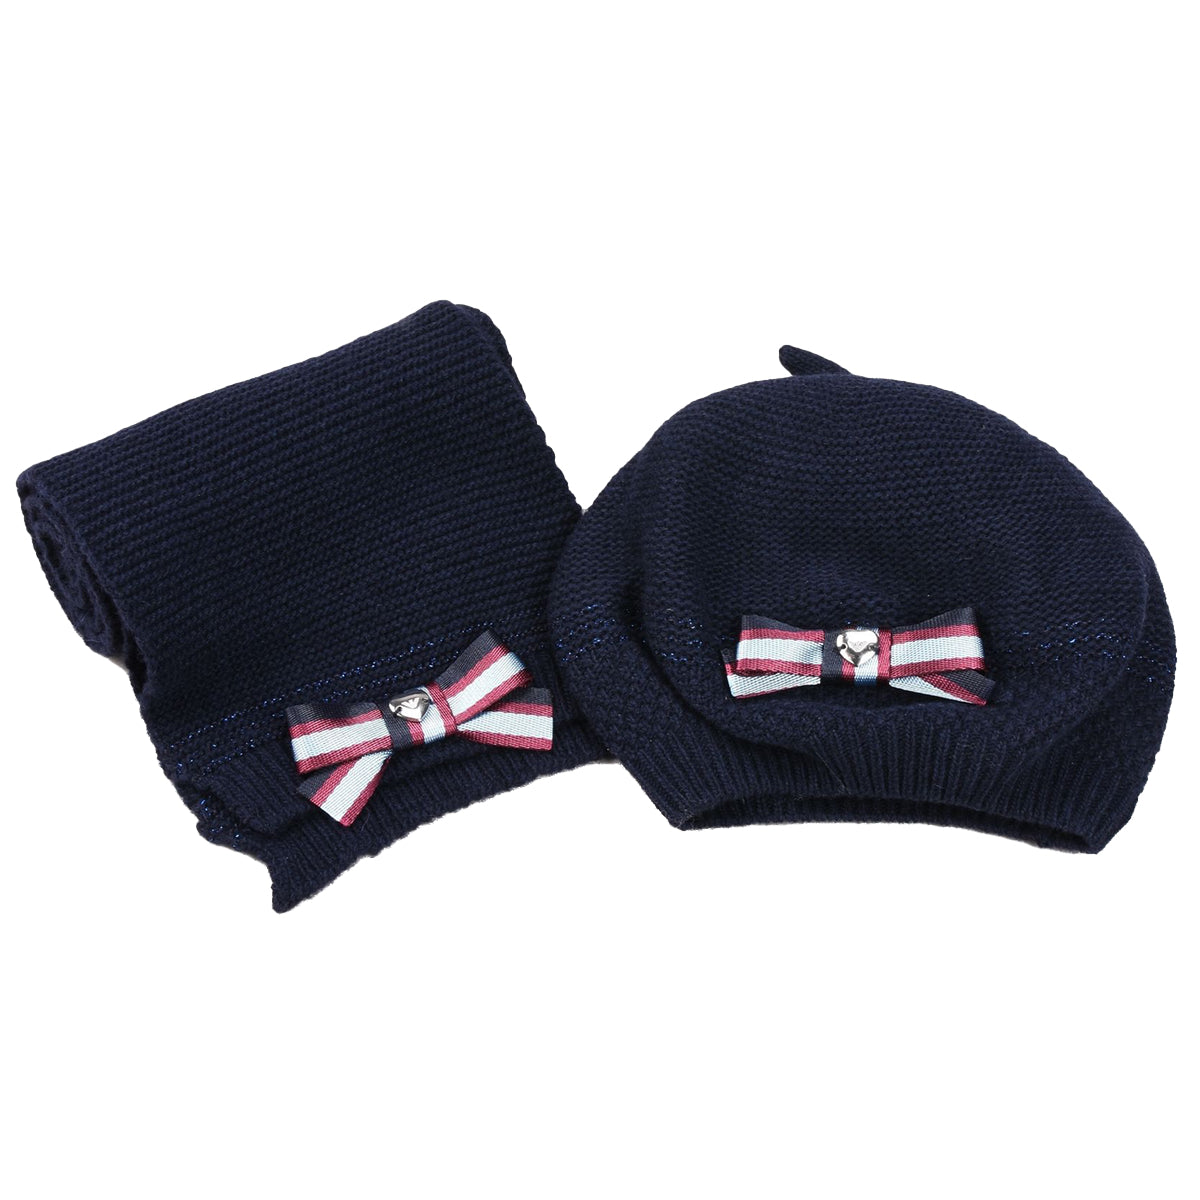 e541c75f Armani Baby Girls Navy Blue Matching Scarf and Hat (Gift Set ...